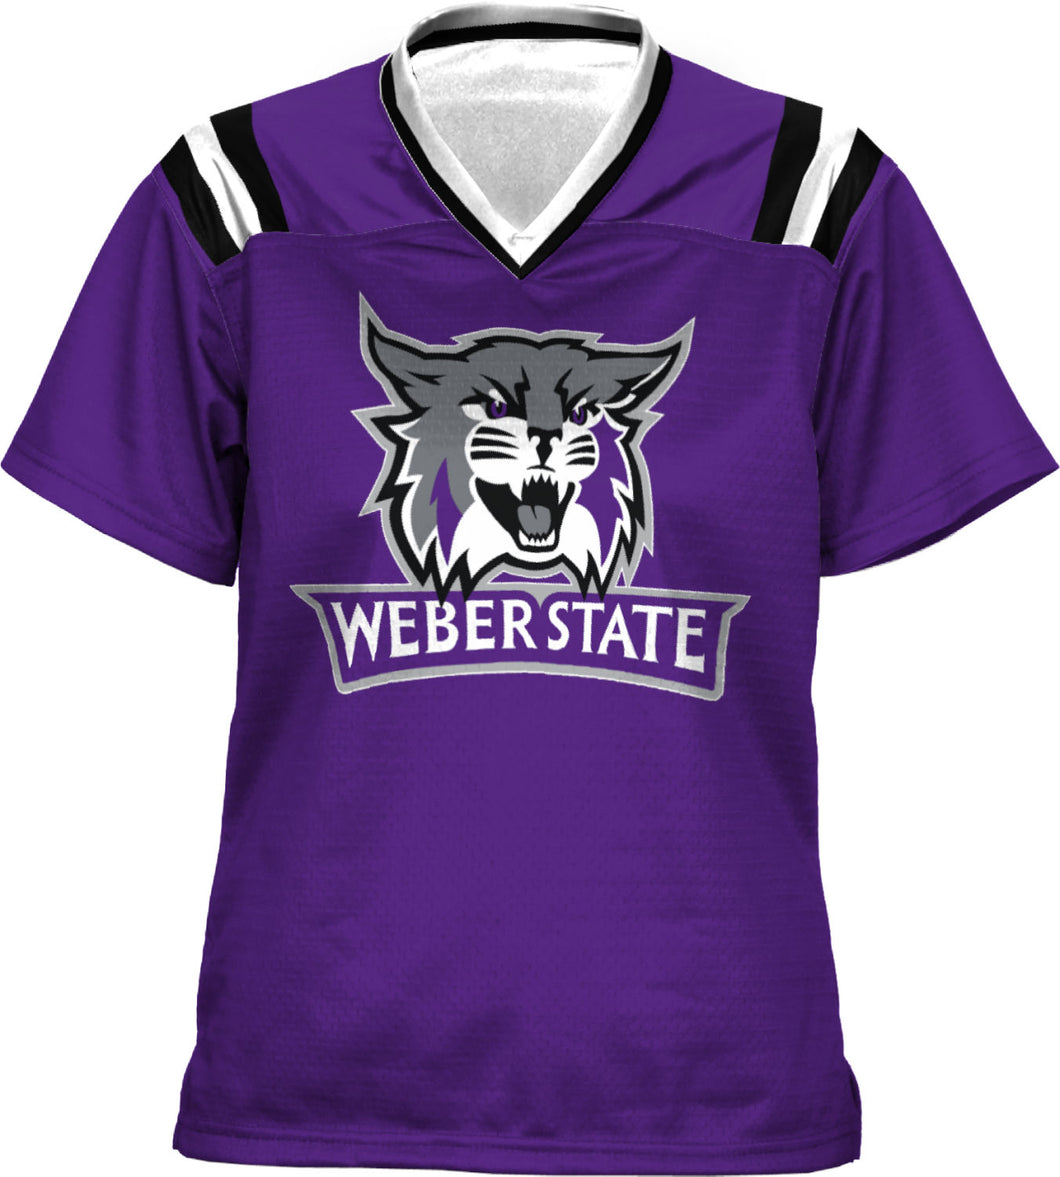 Weber State University: Girls' Football Fan Jersey - Goal Line